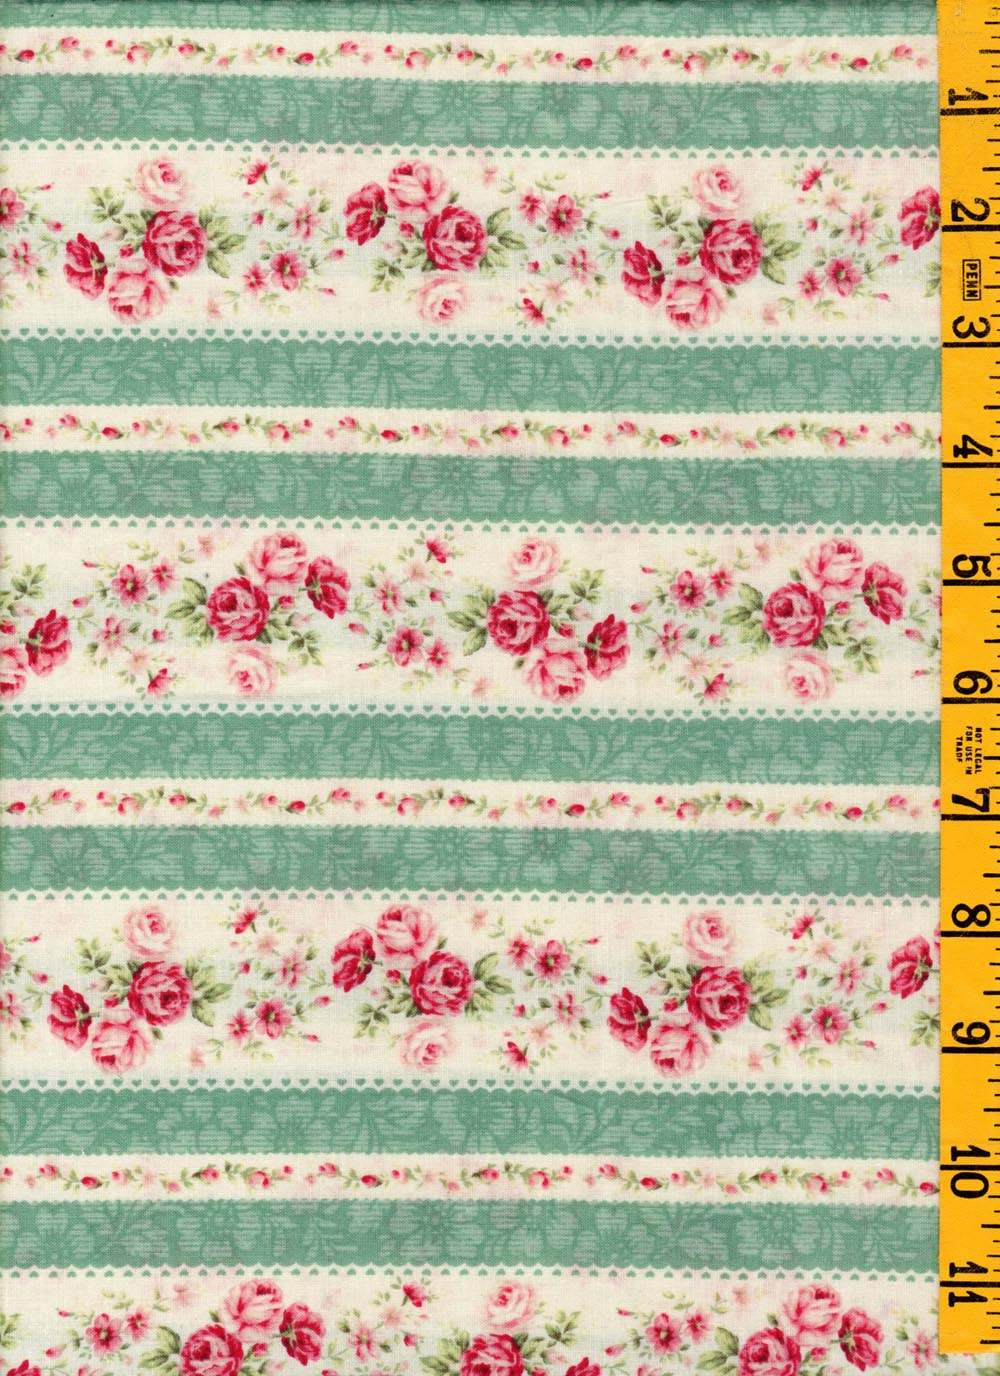 Quilt Patterns Using Stripe Fabric : New Cotton Quilting Sewing Fabric Quiltgate Multi Green Floral Stripe eBay